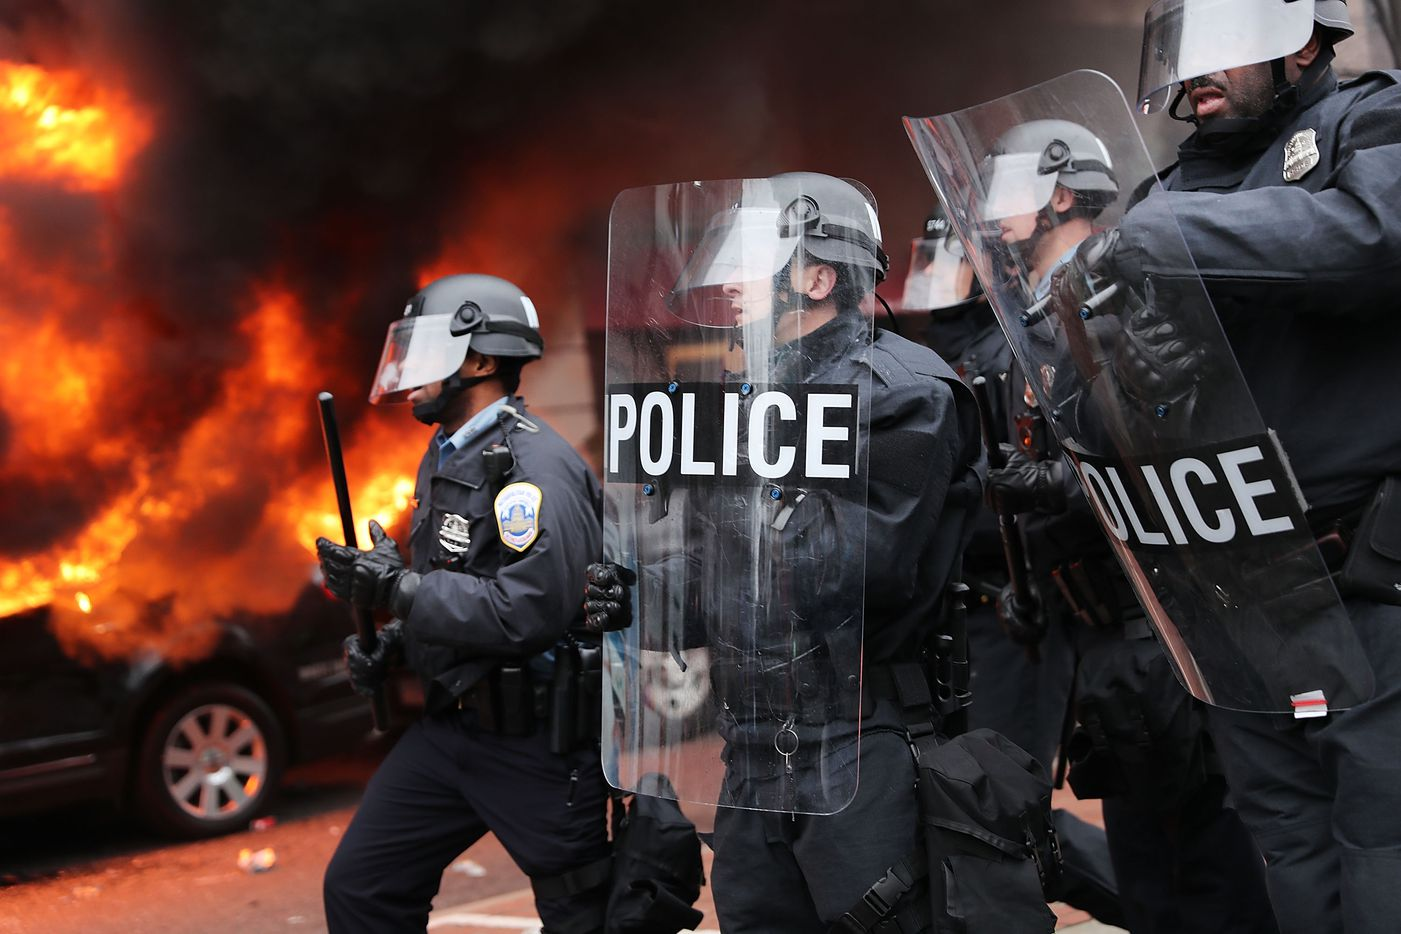 Police and demonstrators clash in downtown Washington after a limo was set on fire following the inauguration of President Donald Trump on January 20, 2017 in Washington, DC. Washington and the entire world have watched the transfer of the United States presidency from Barack Obama to Donald Trump, the 45th president.